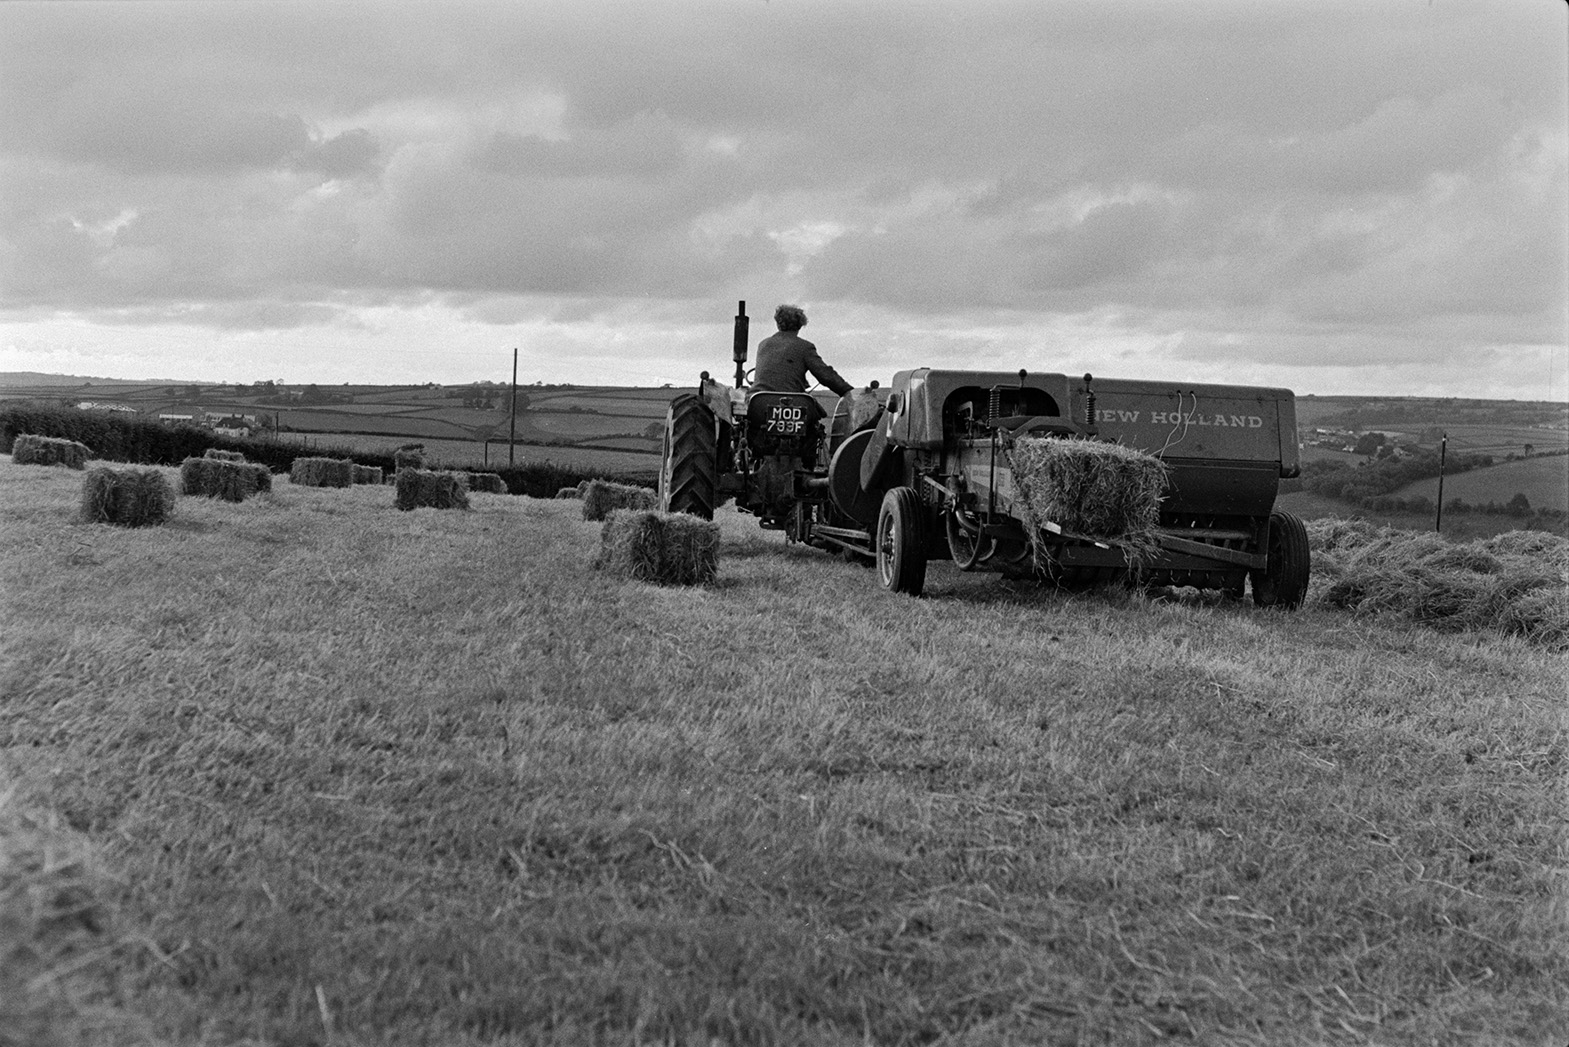 Ivor Bourne driving a tractor and baler in a field at Mill Road Farm, Beaford. A hay bale can be seen coming out of the baler. The farm was also known as Jeffrys.